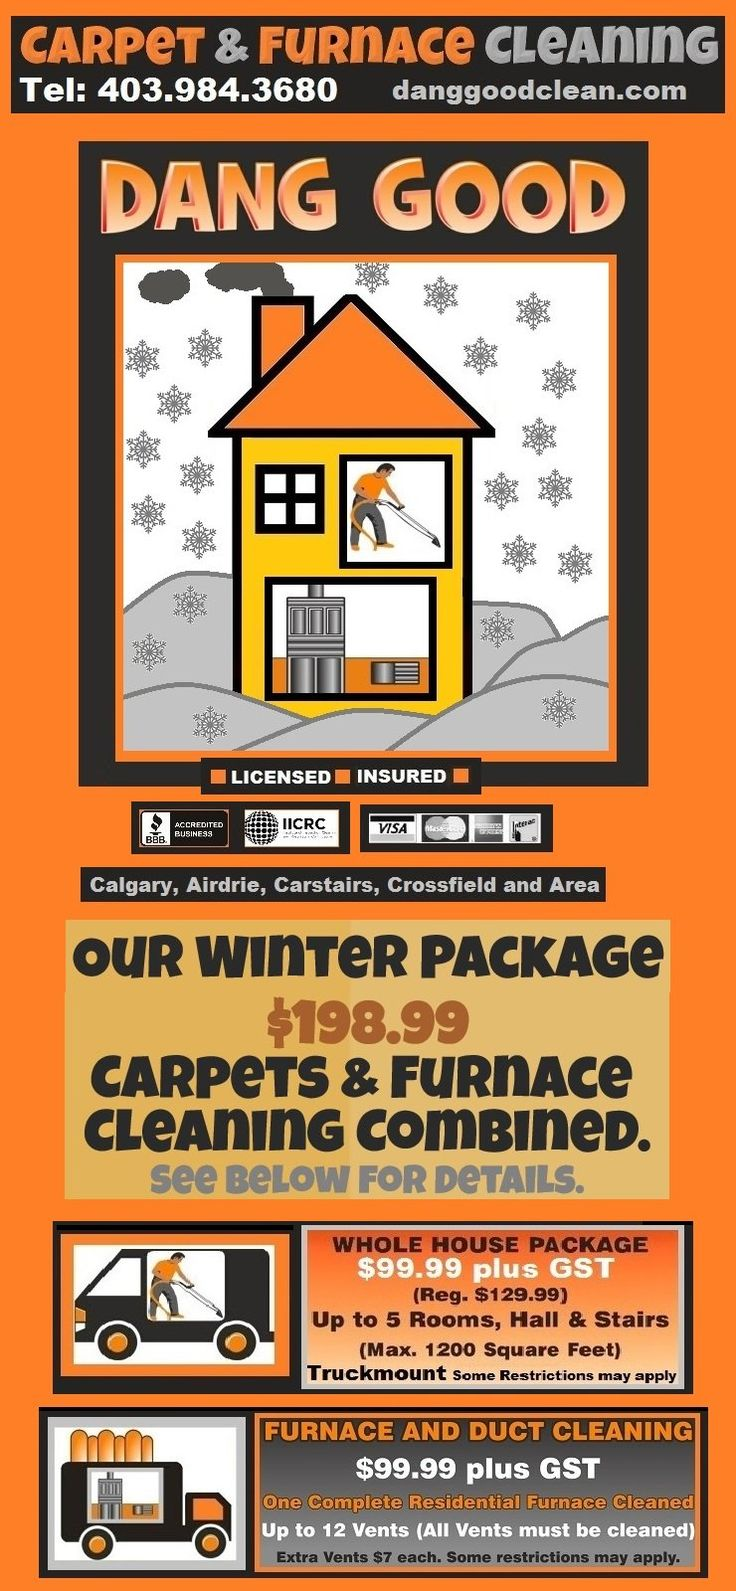 Our winter package $198.99 for Carpets and Furnace Cleaning.  Check out Dang Good Carpet and Furnace Cleaning. m.danggoodclean.com